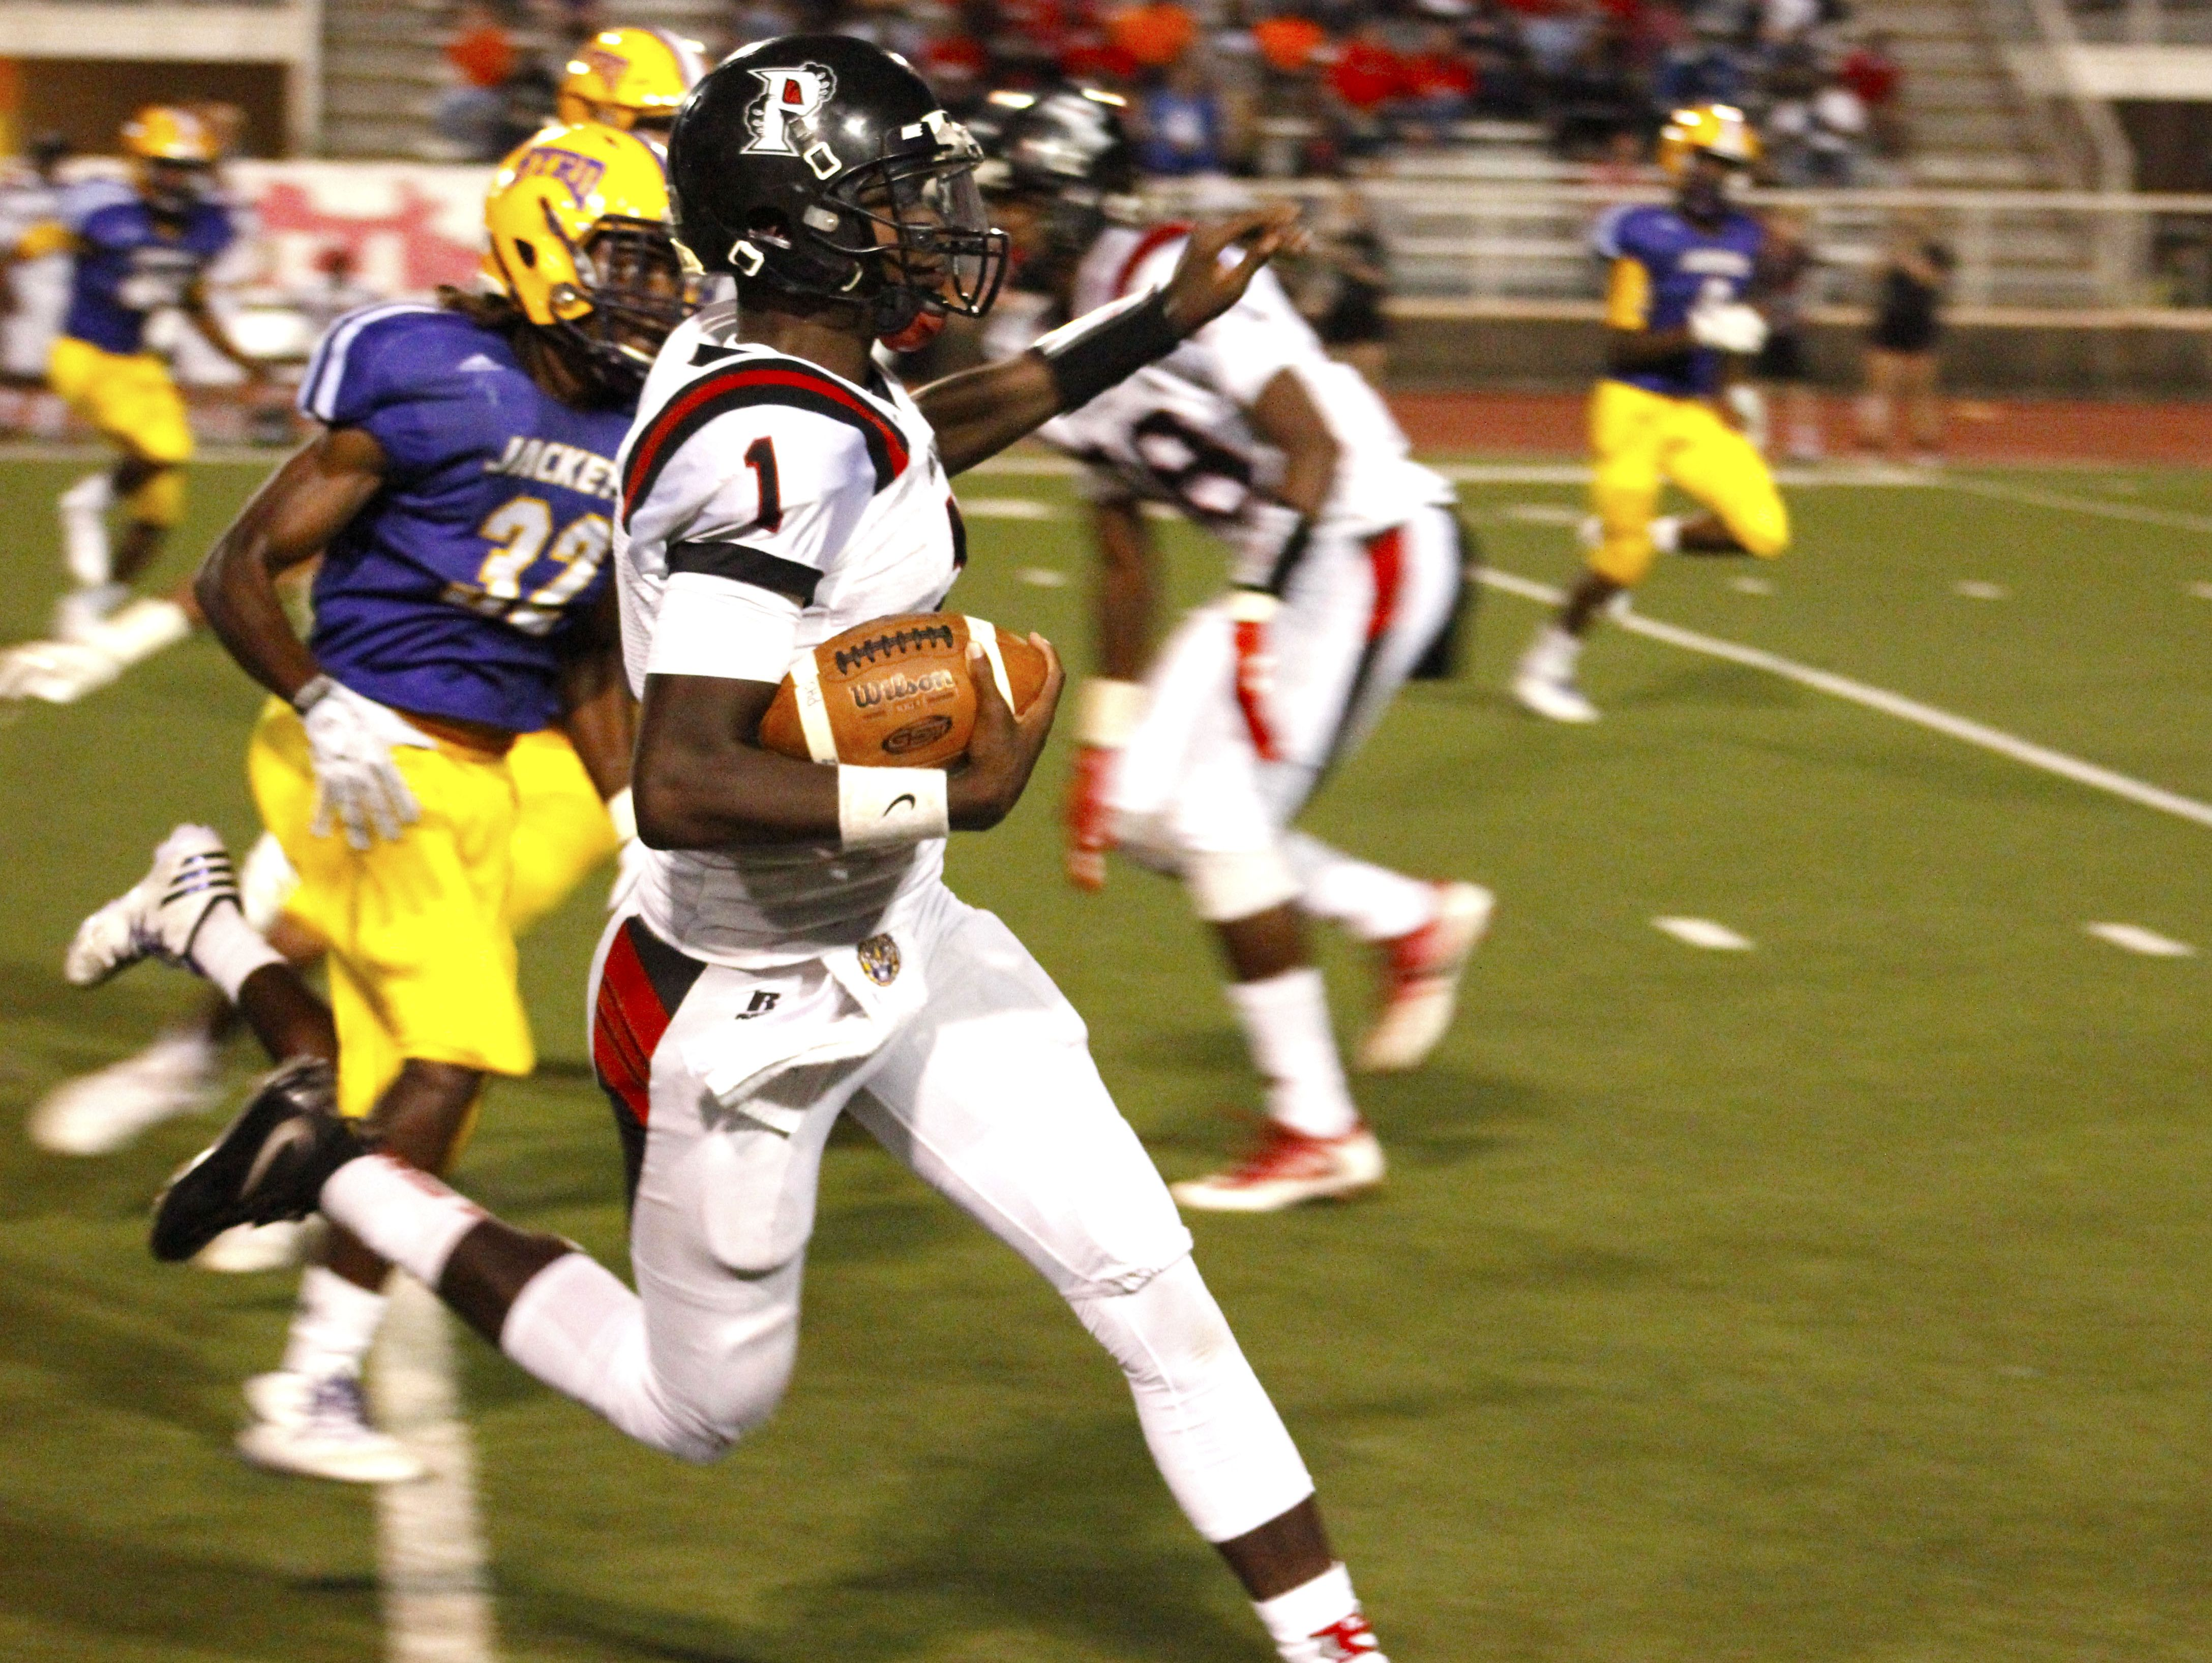 Parkway's Justin Rogers runs for yardage earlier this season against Byrd. Rogers leads the state in passing yards through 9 games.